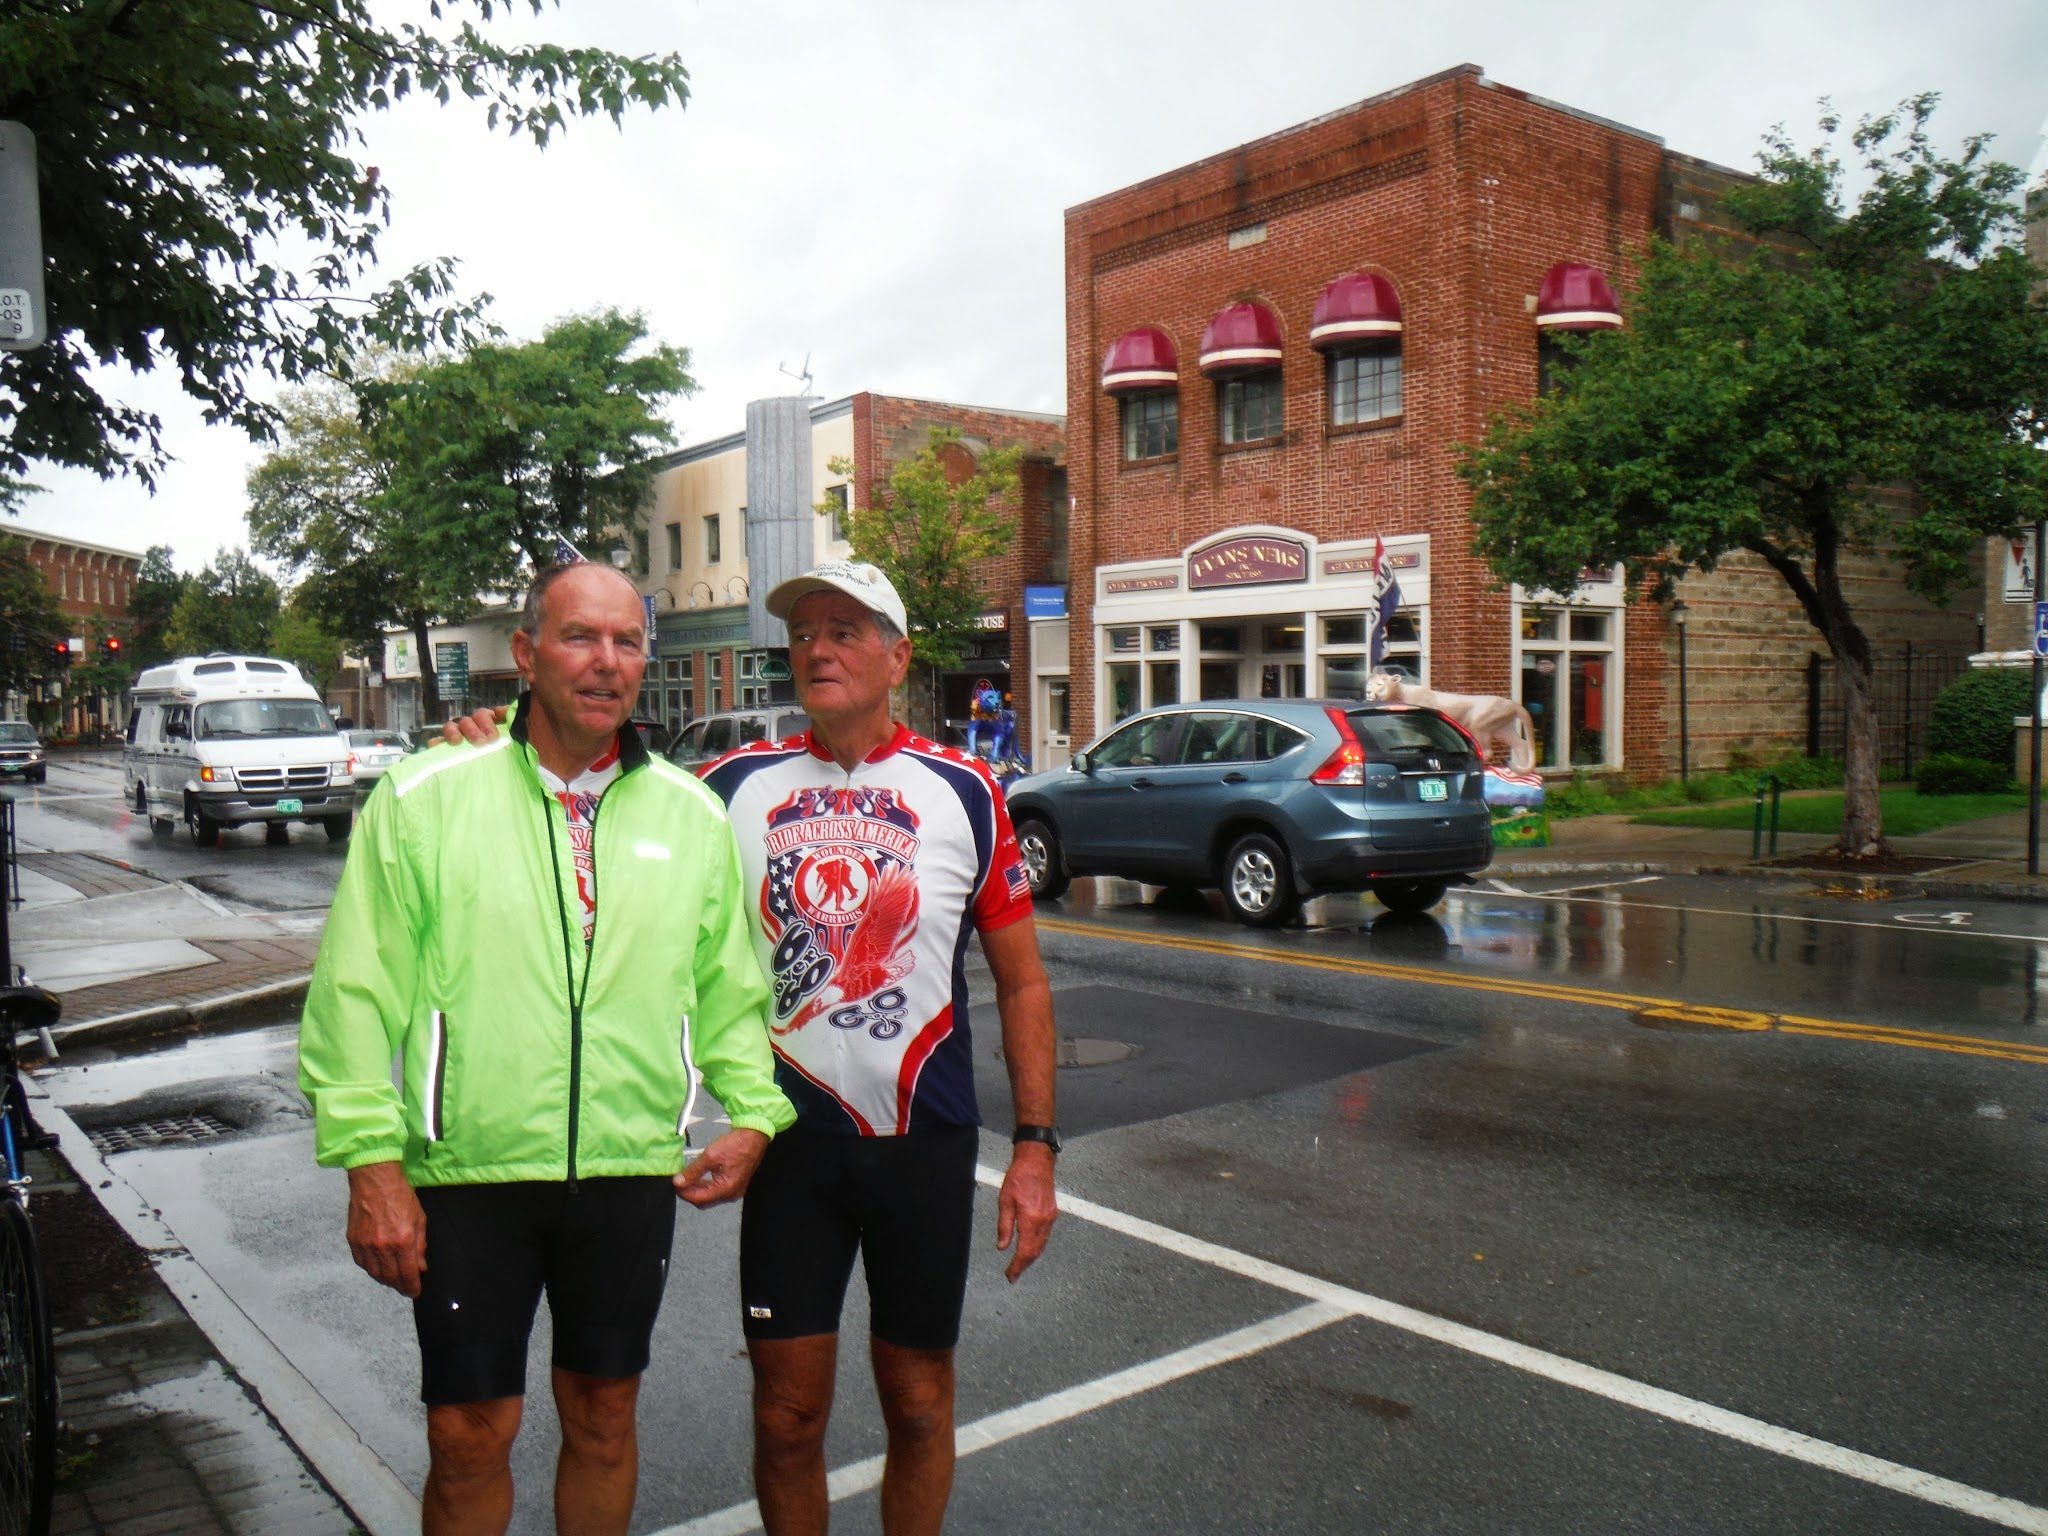 Photo: Day 52 August 9 2013 Latham NY to Bennington VT  We had hot chocolate and cookies at the Crazy Russian Girls Bakery.